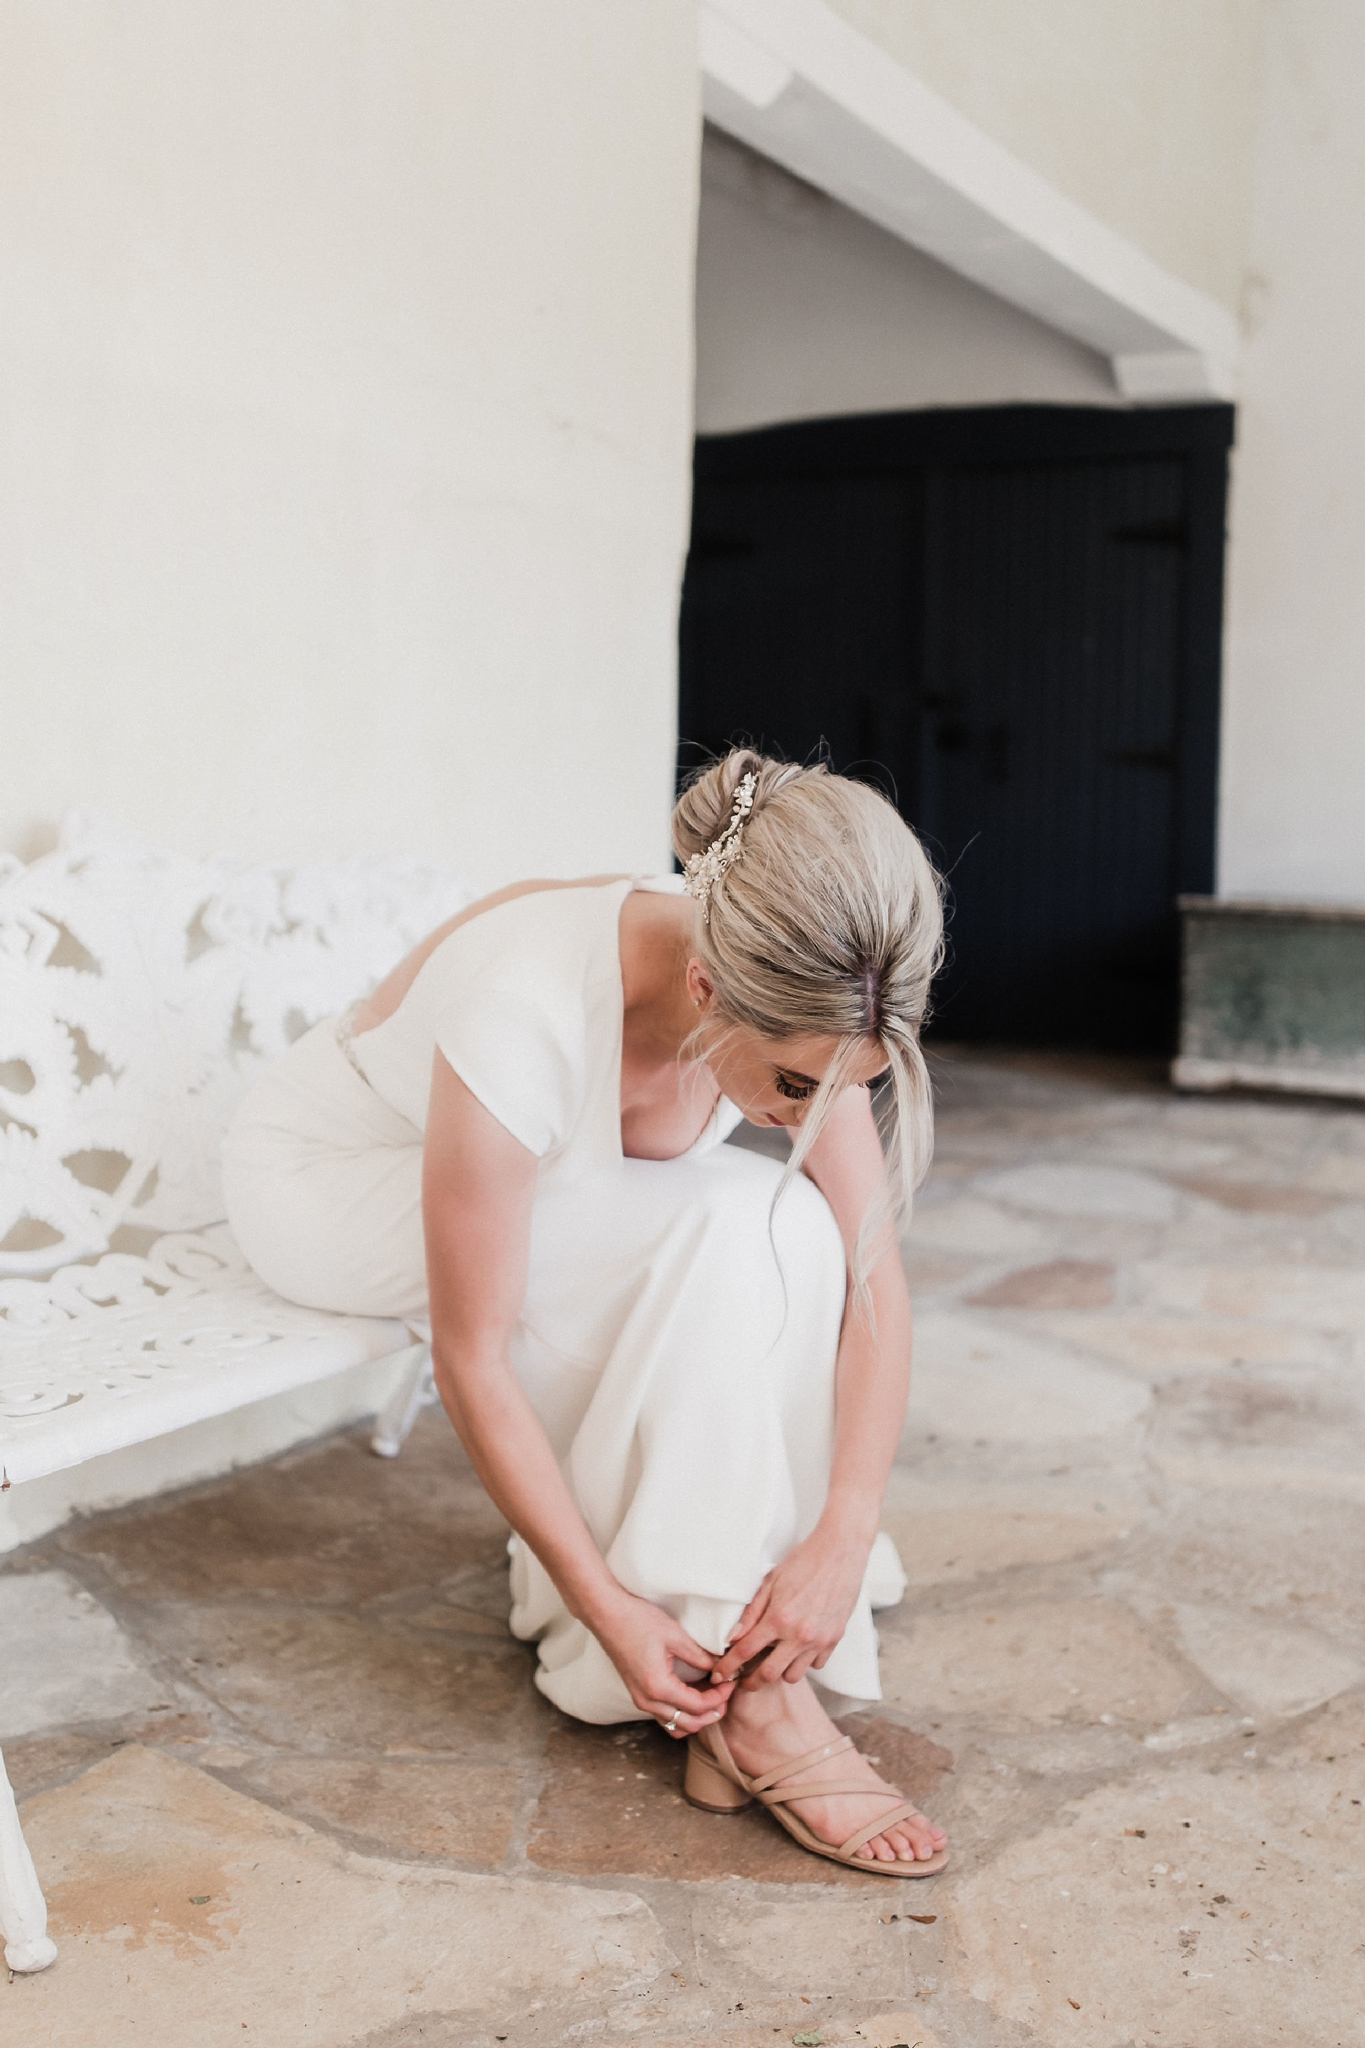 Alicia+lucia+photography+-+albuquerque+wedding+photographer+-+santa+fe+wedding+photography+-+new+mexico+wedding+photographer+-+new+mexico+wedding+-+new+mexico+wedding+-+colorado+wedding+-+bridal+shoes+-+bridal+inspo_0009.jpg